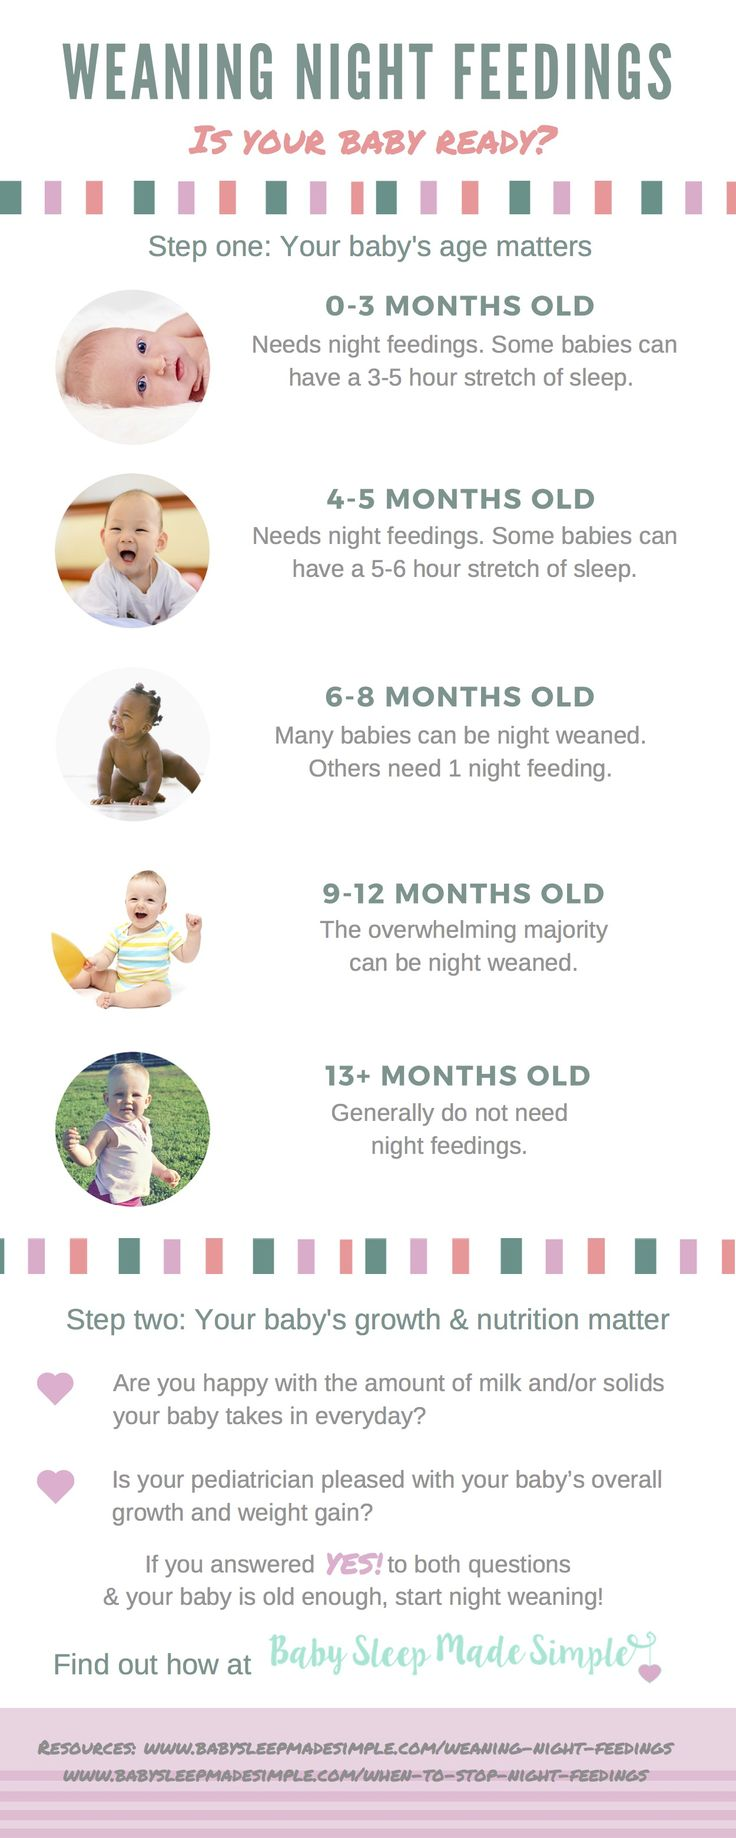 Weaning Night Feedings - Is Your Baby Ready? | This useful infographic will shed some light onto your baby's readiness to go longer stretches at night without feeding.